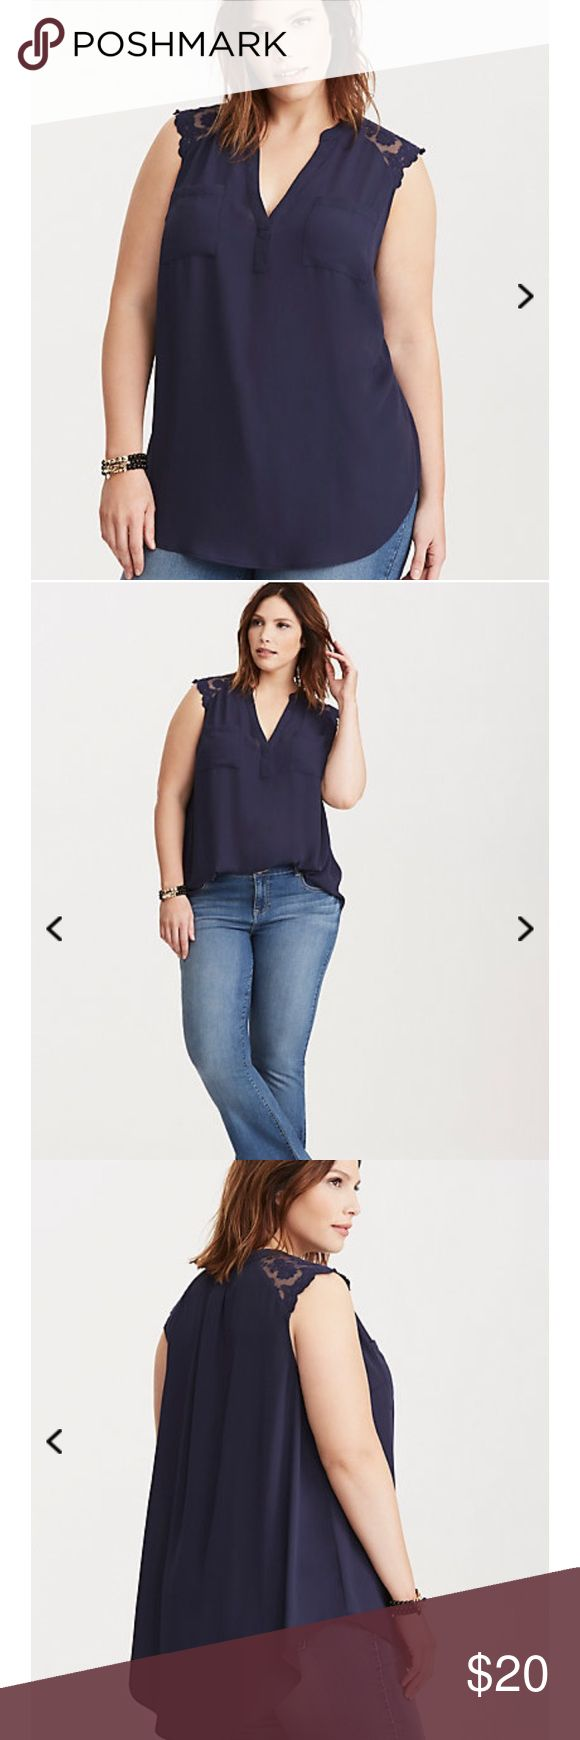 Brand New Without TagTorrid 4x Lace Inset Tank Top Our georgette tank that you love just got a way chic upgrade with embroidered mesh inset straps. A no-nonsense front placket polishes up the semi-sheer navy georgette, while the hi-lo hem creates a built-in-breeze. Pockets. torrid Tops Blouses